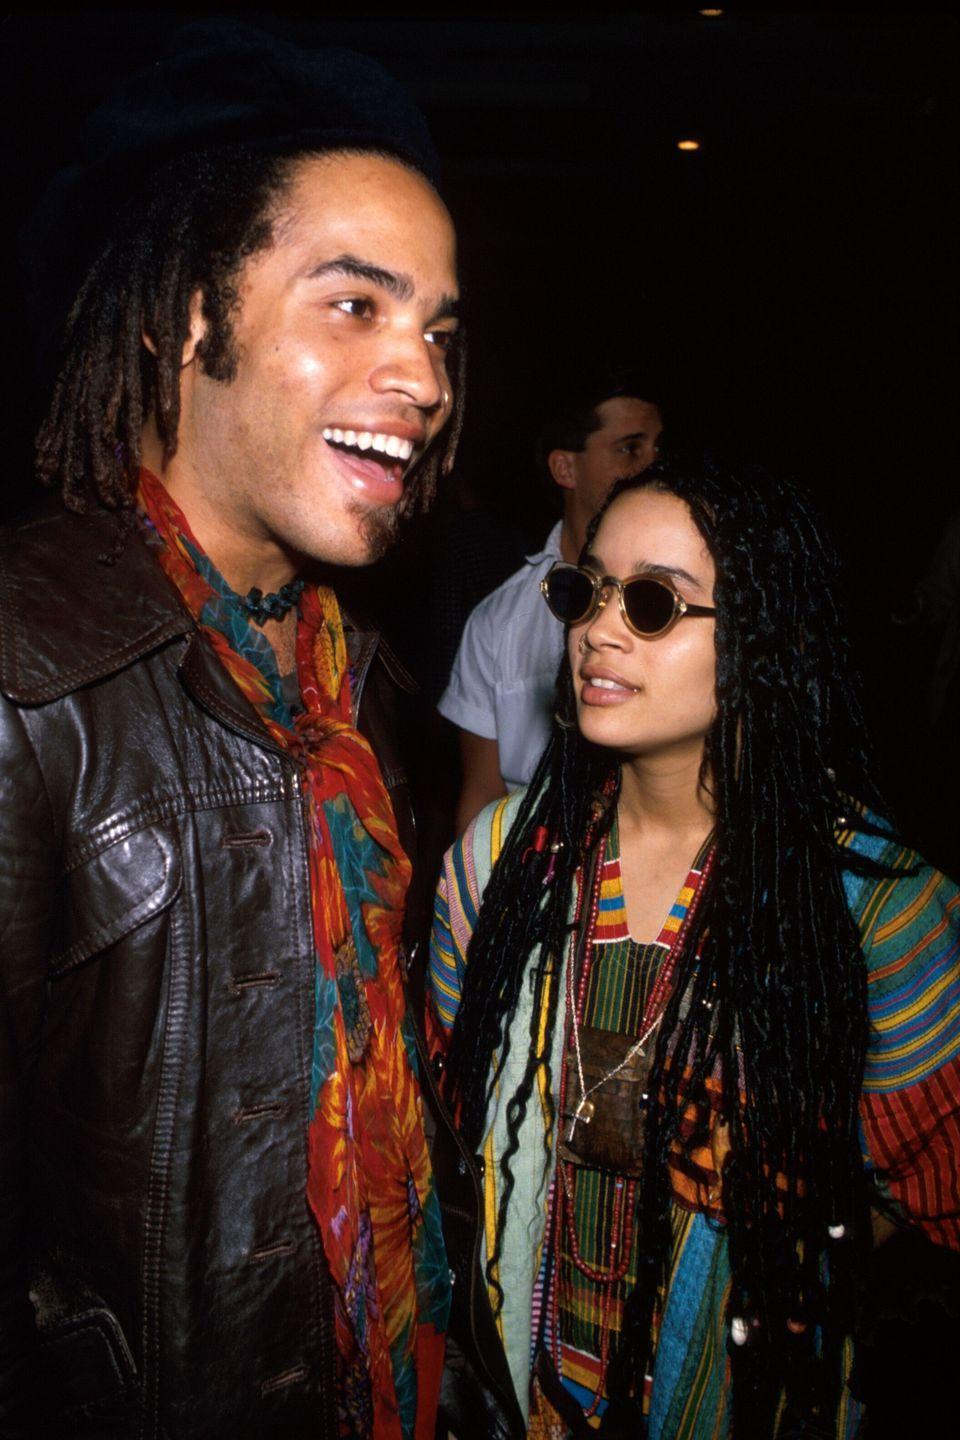 "<p>Lenny Kravitz and <em>The Cosby Show </em>actress Lisa Bonet <a href=""http://www.huffingtonpost.com/2013/06/01/lenny-kravitz-lisa-bonet-divorce_n_3368400.html"" rel=""nofollow noopener"" target=""_blank"" data-ylk=""slk:eloped"" class=""link rapid-noclick-resp"">eloped</a> in Las Vegas in 1987, on Bonet's 20th birthday. They had a daughter named Zoë in 1988 before they eventually divorced in 1993. <br></p>"